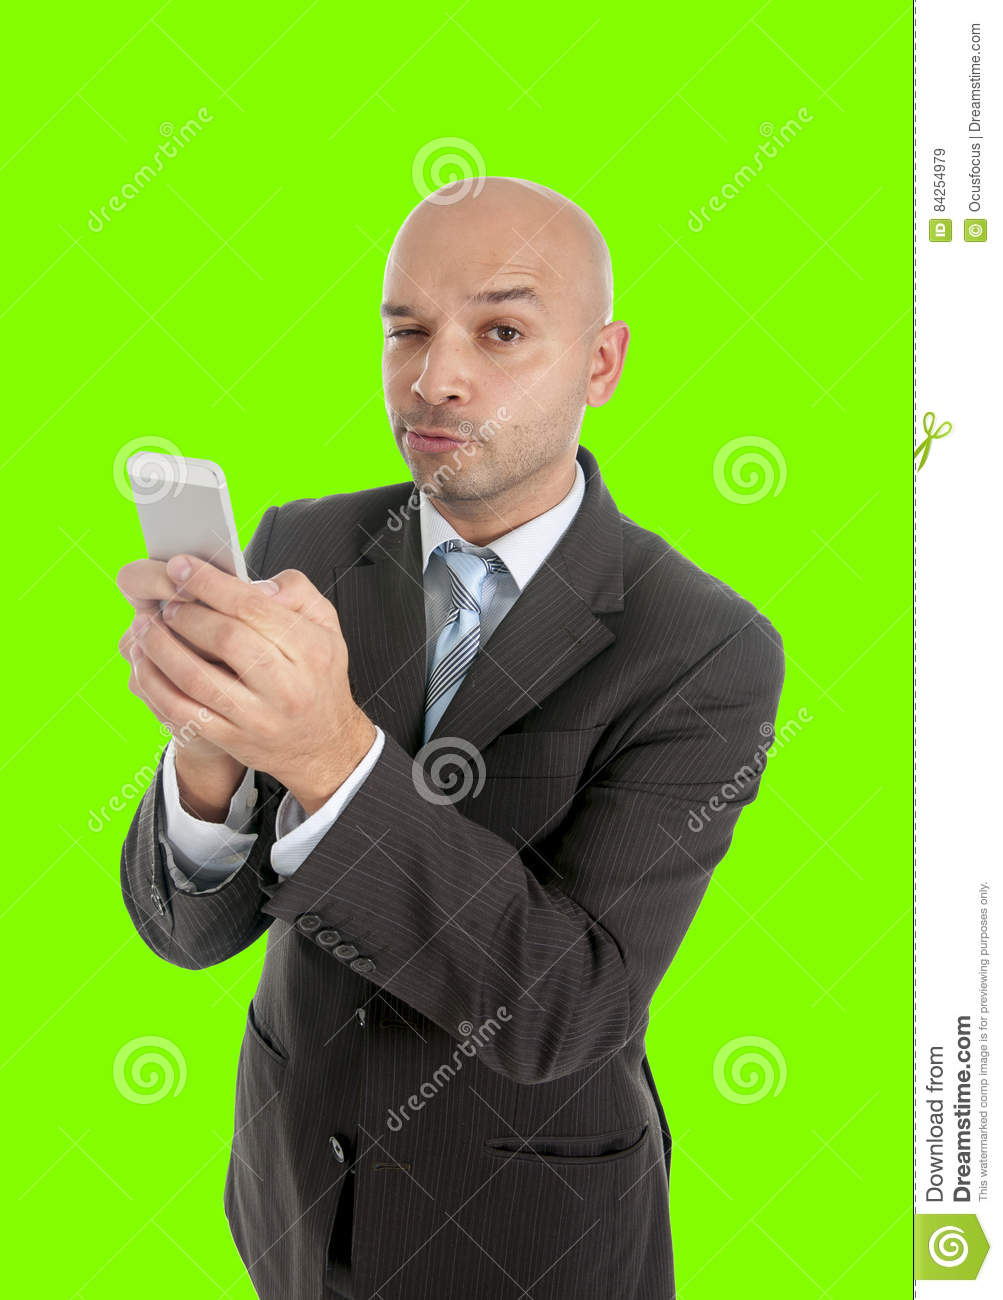 Businessman using compulsively cell phone smiling in mobile addiction isolated green chroma key